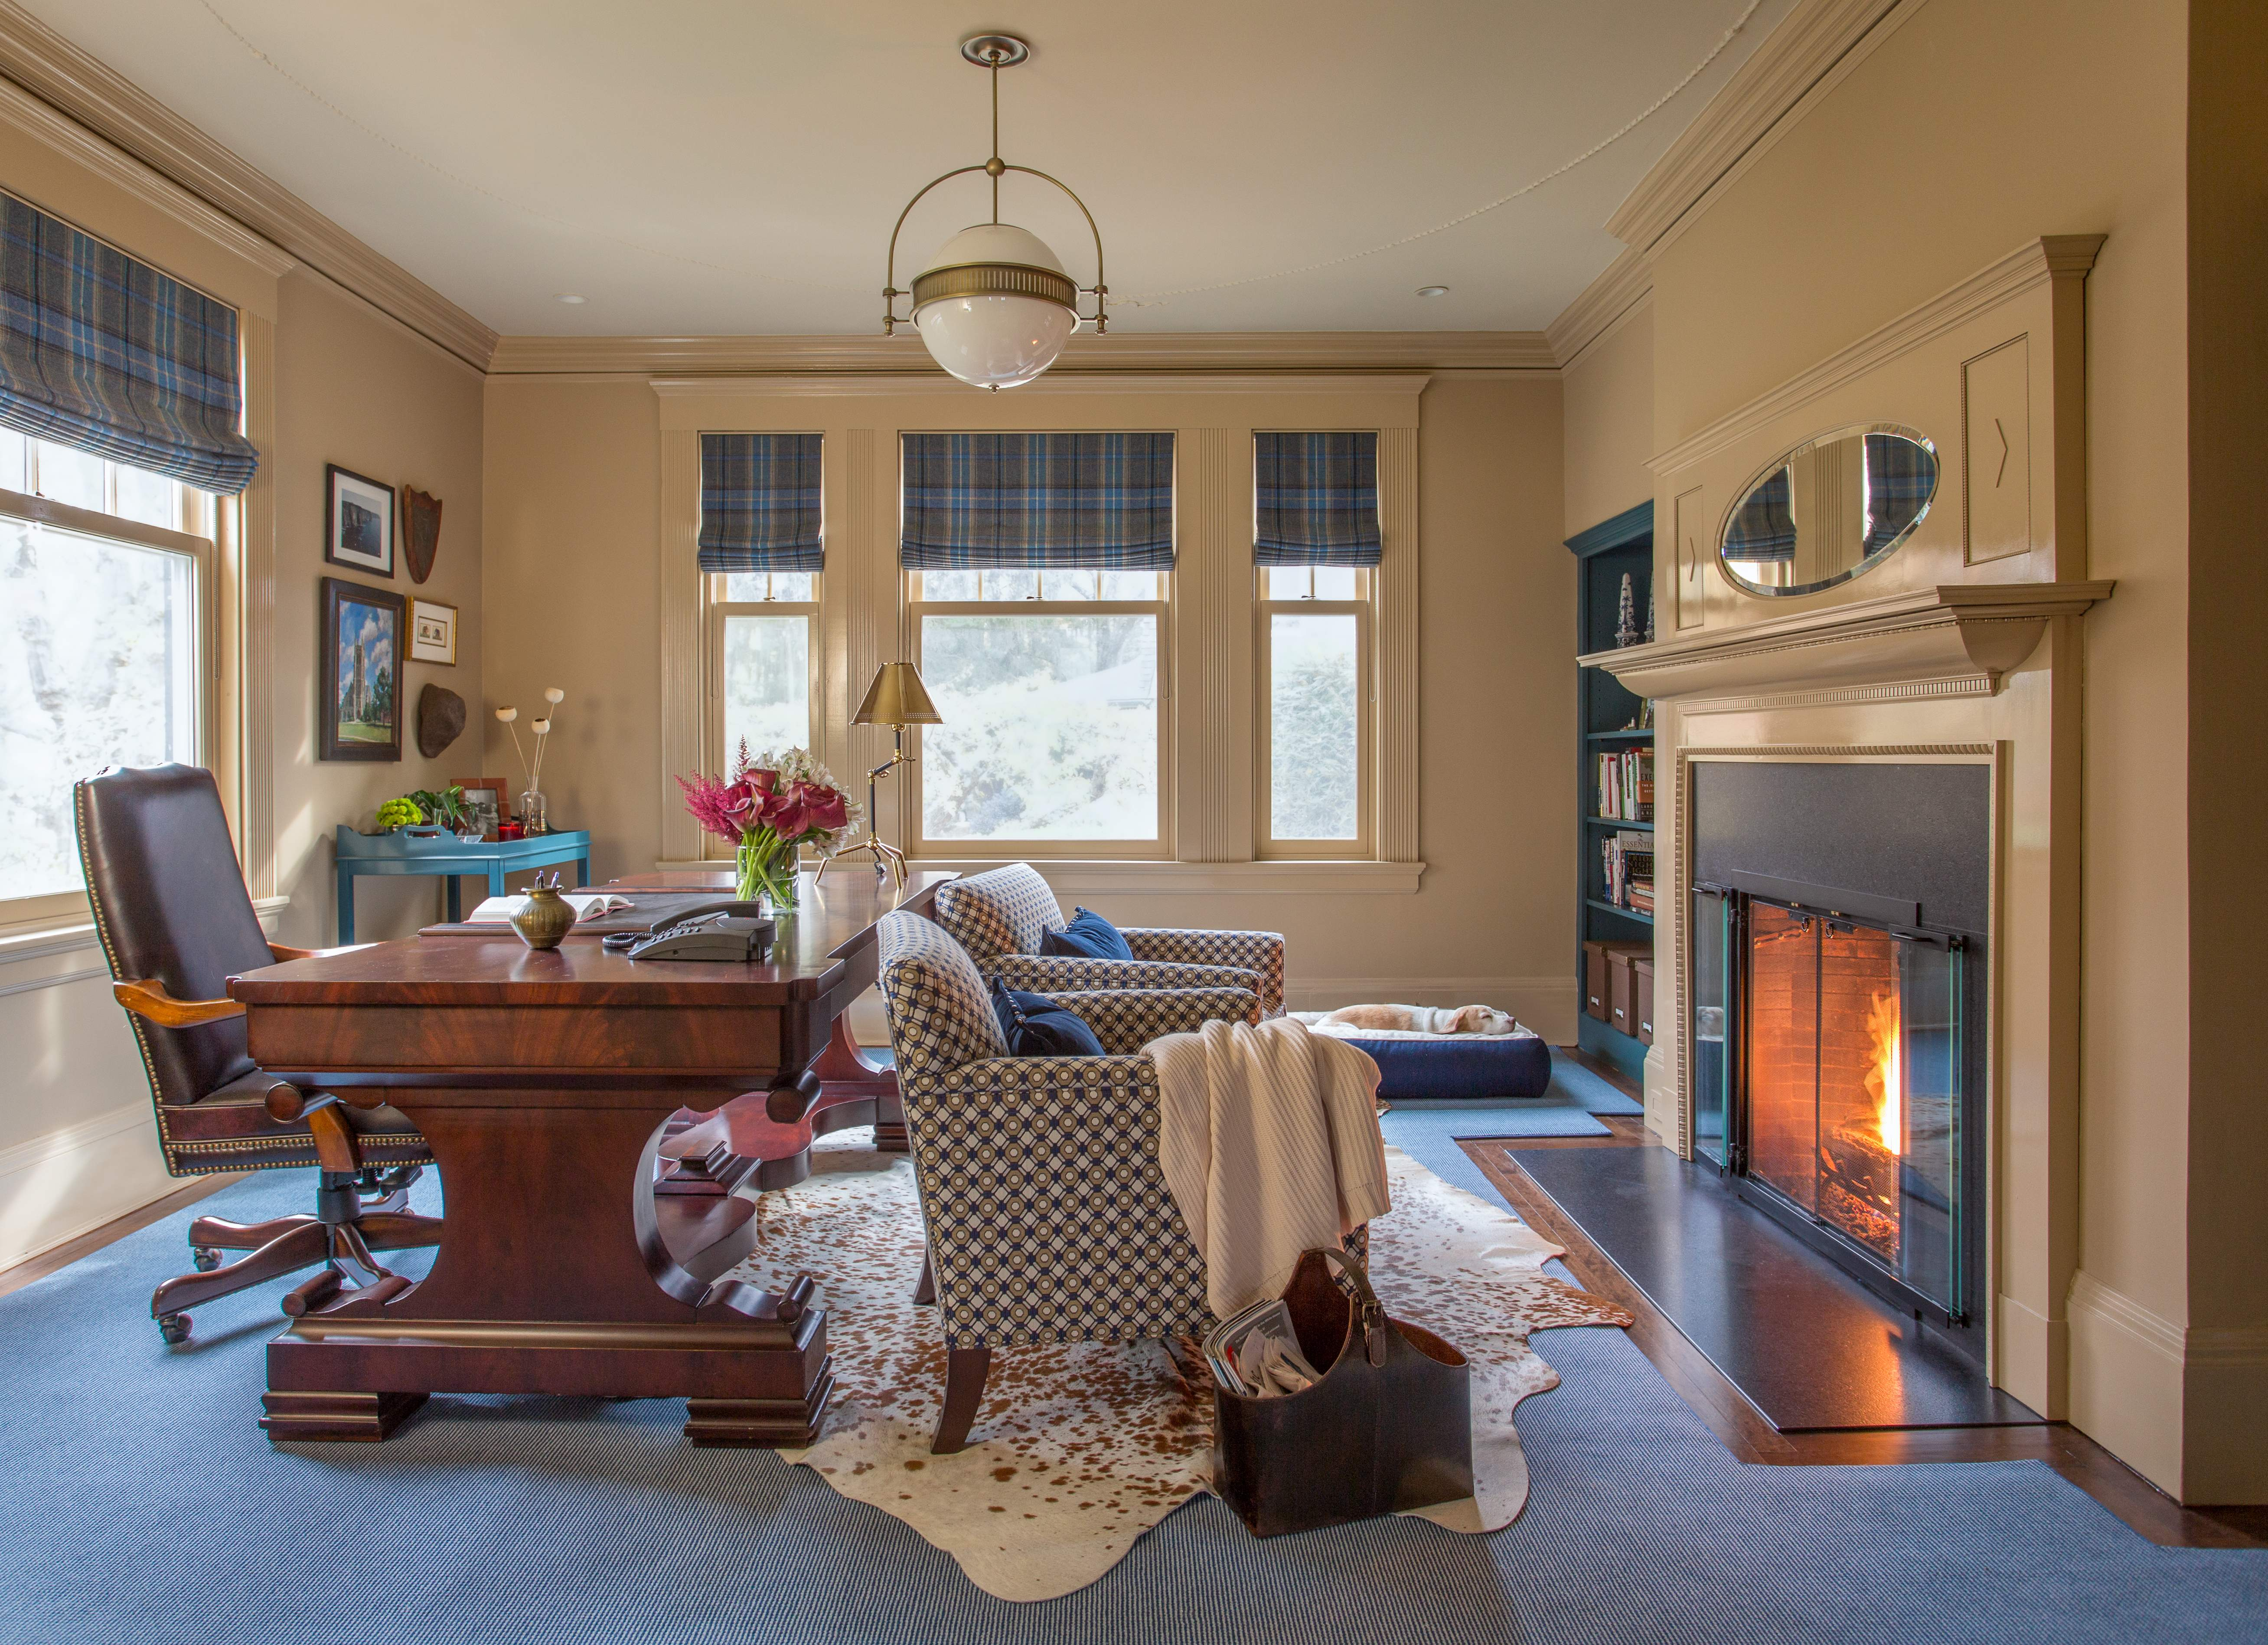 One Room Challenge Manbrary Reveal | Kelly Rogers Interiors | Interiors for Families